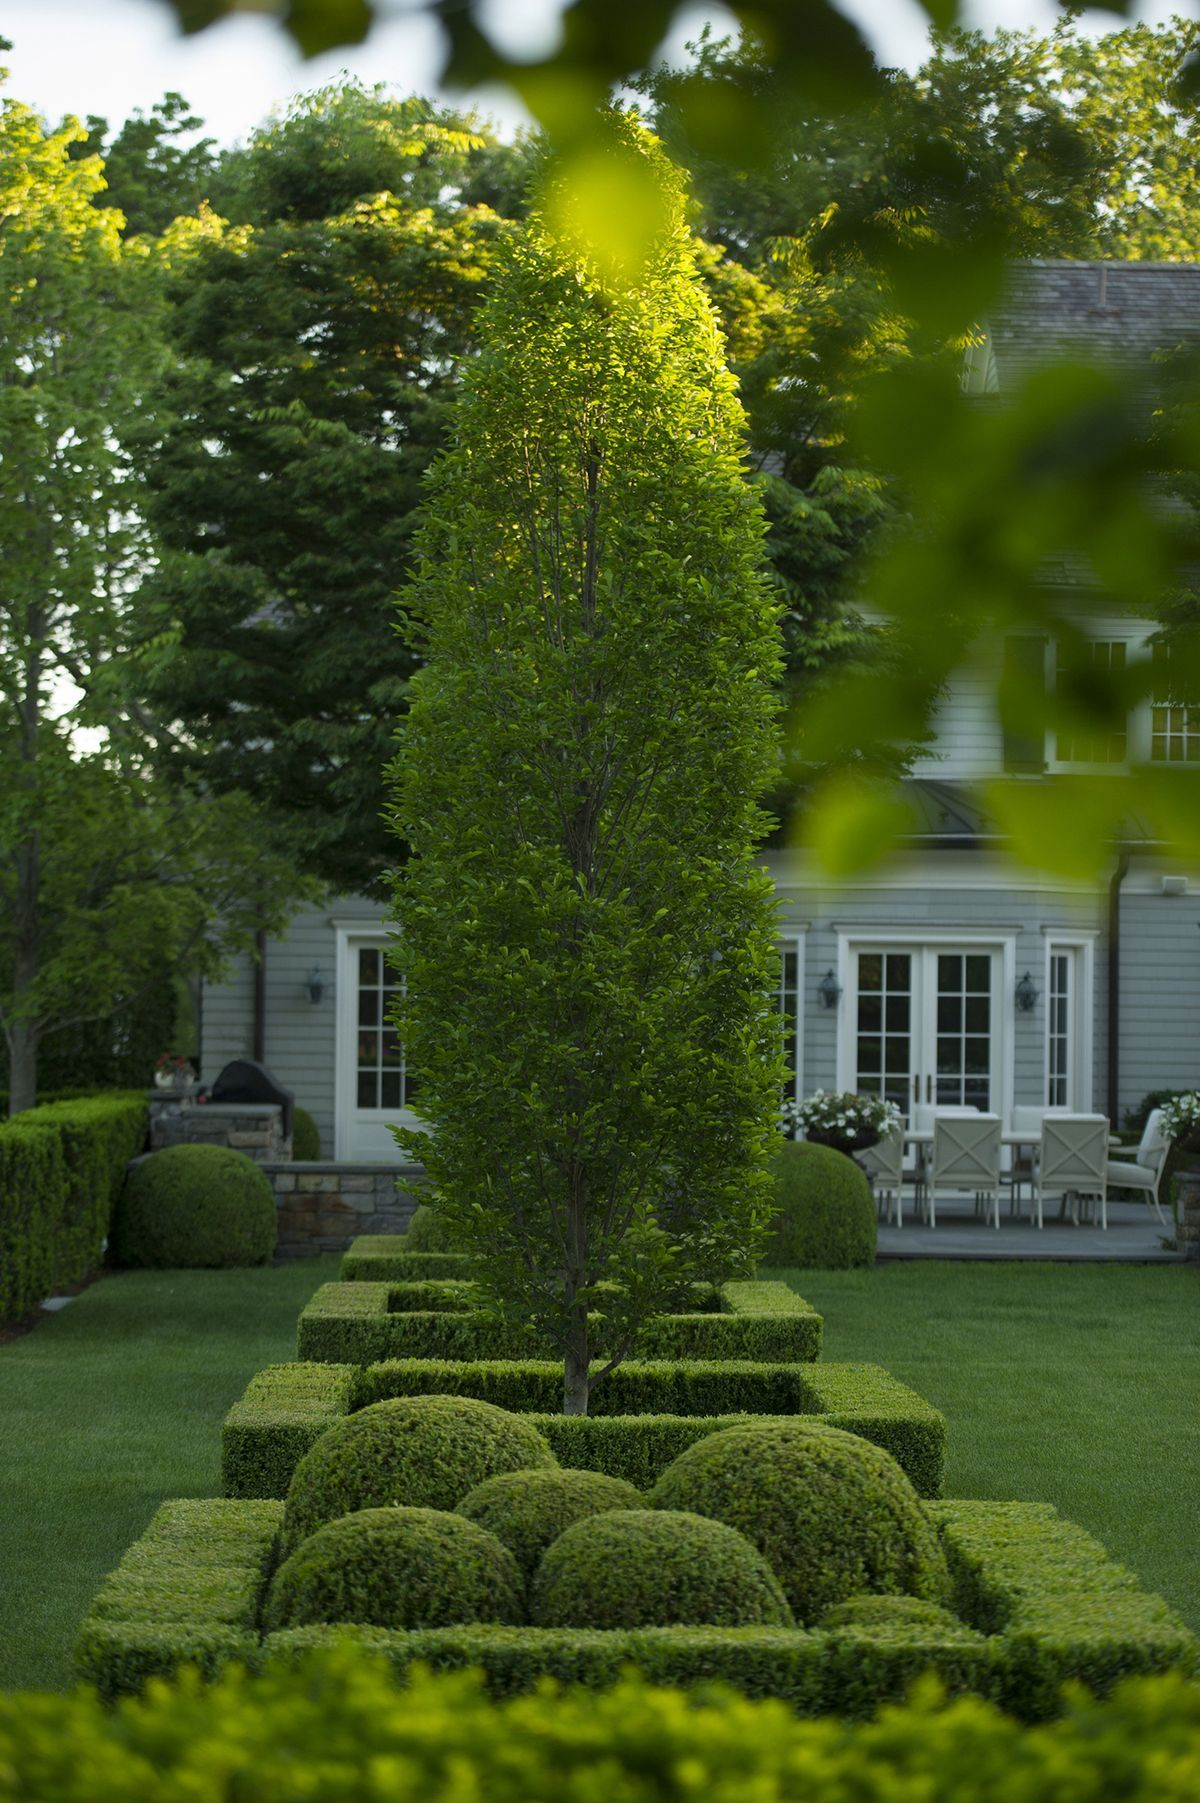 Landscape of house garden  Pin by marta on garden  Pinterest  Gardens Landscaping and Topiary